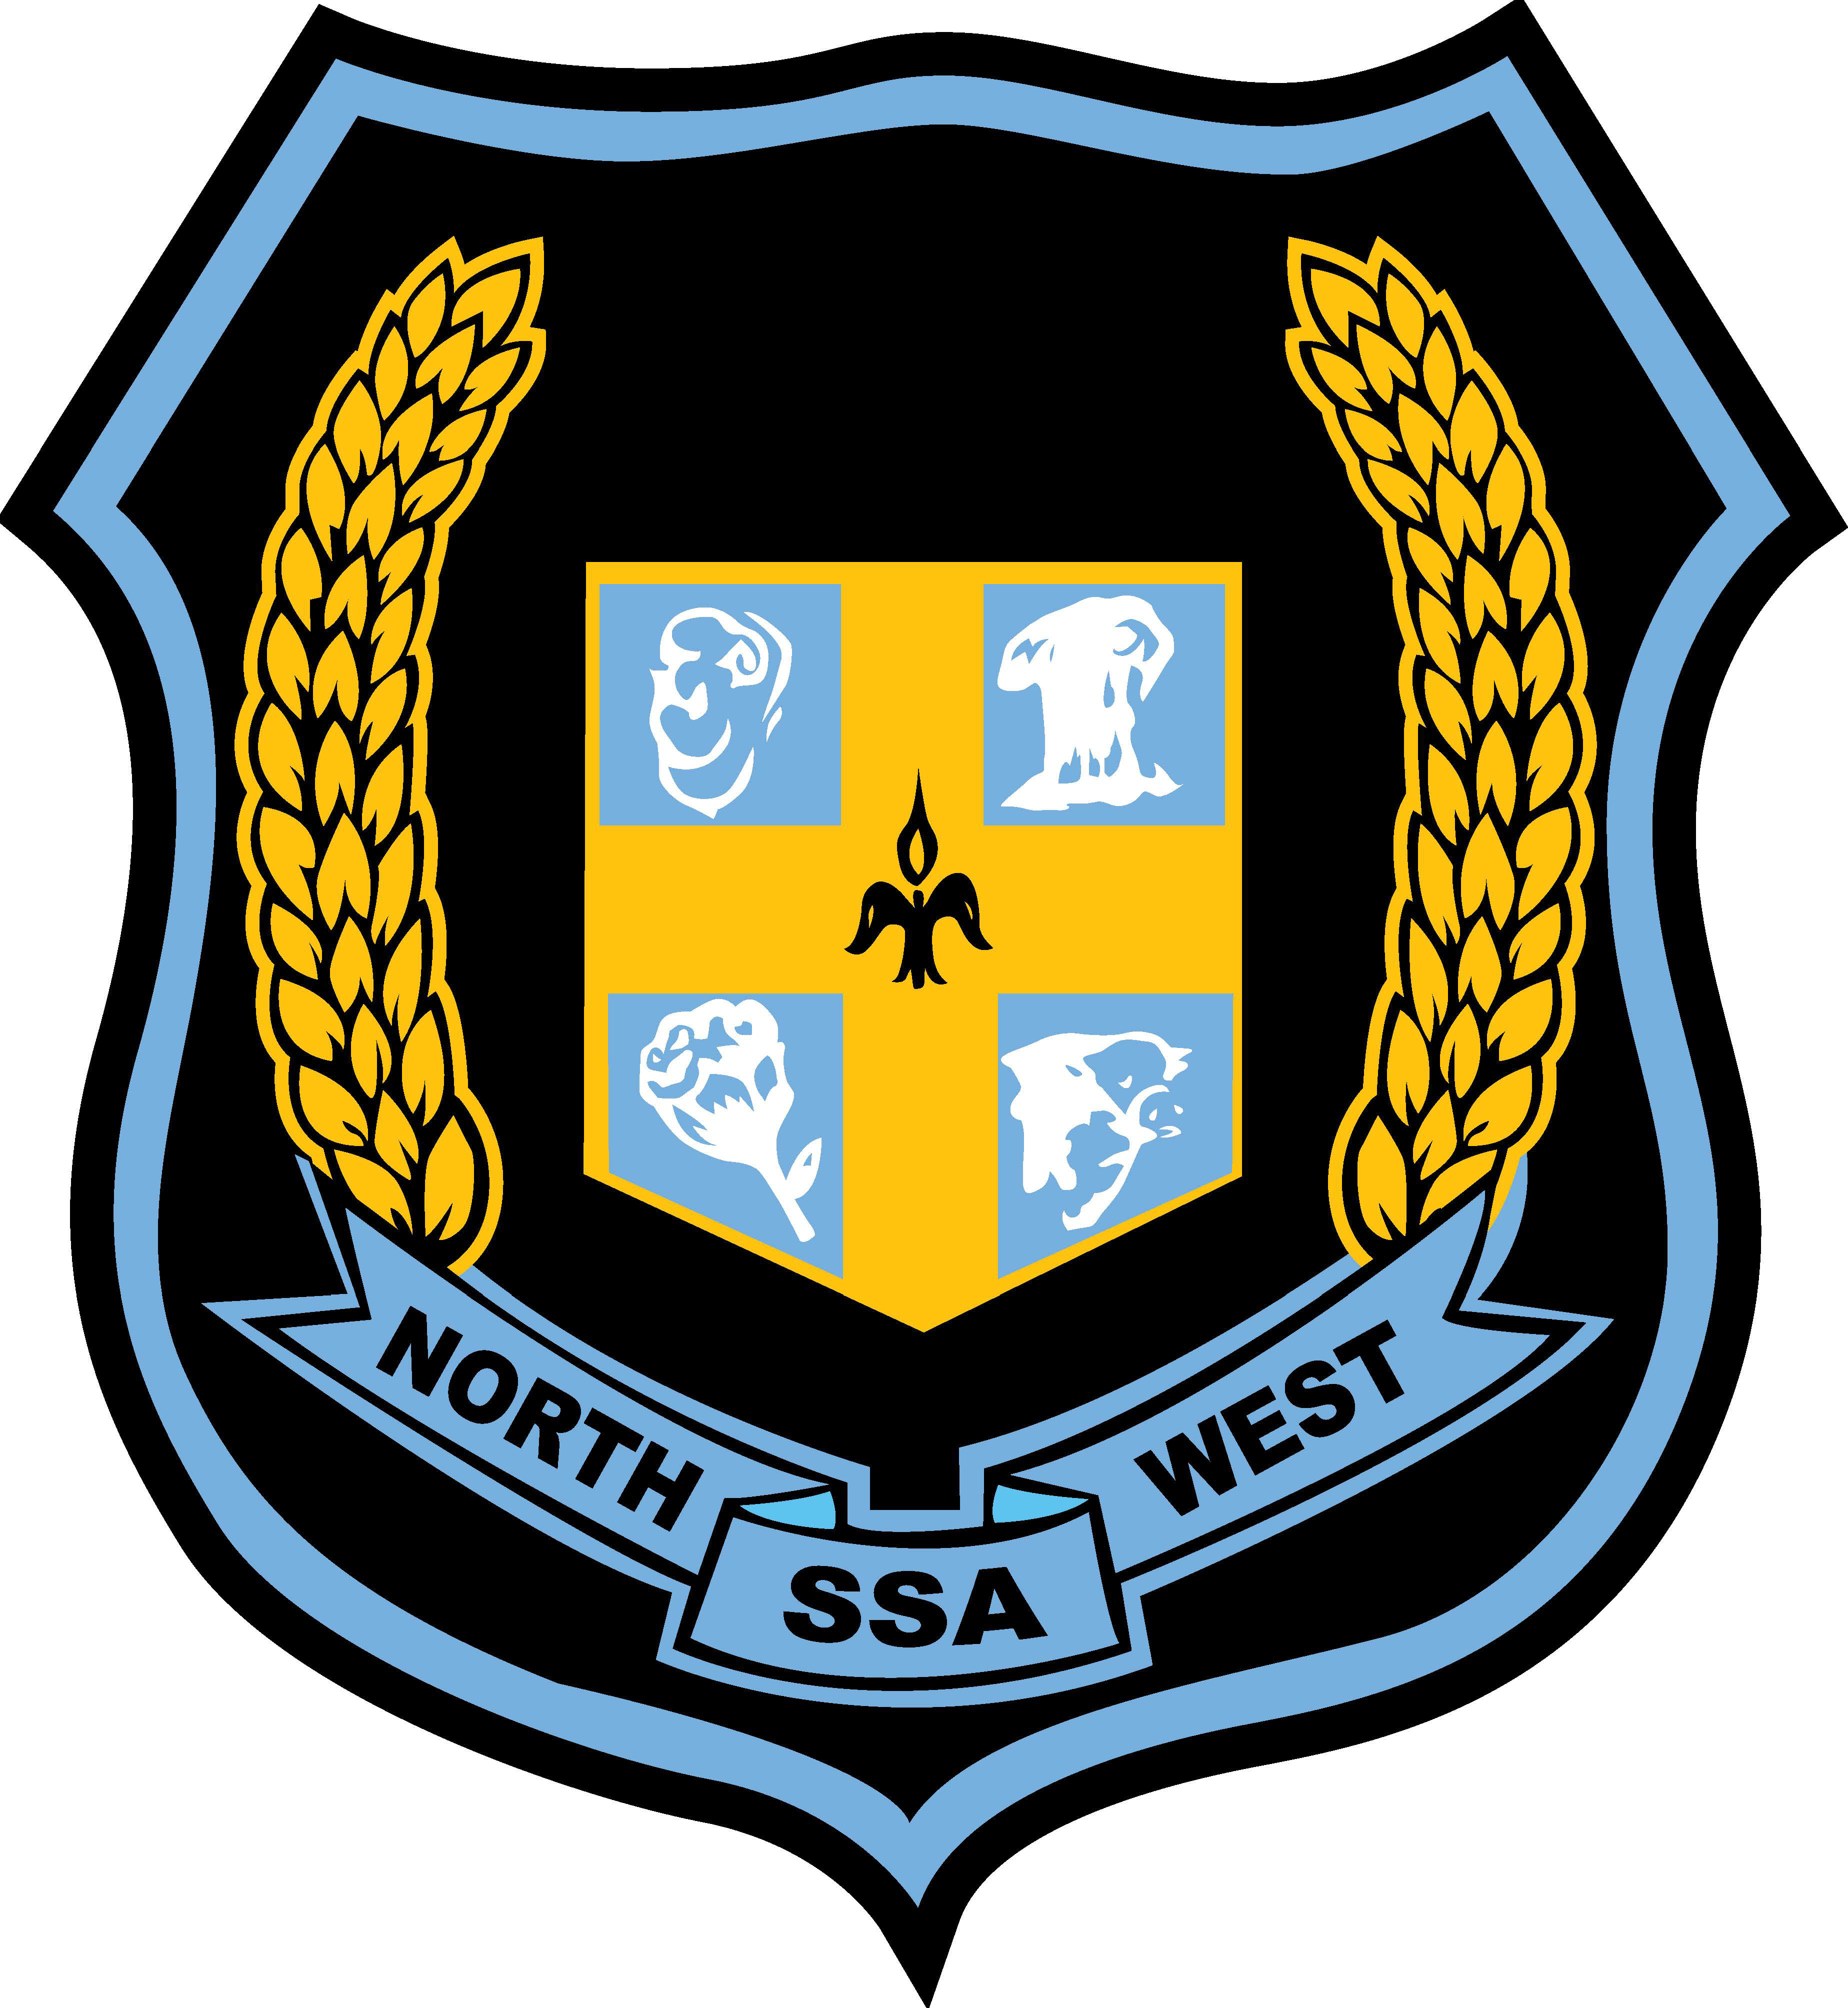 North West Schools Sports Association logo